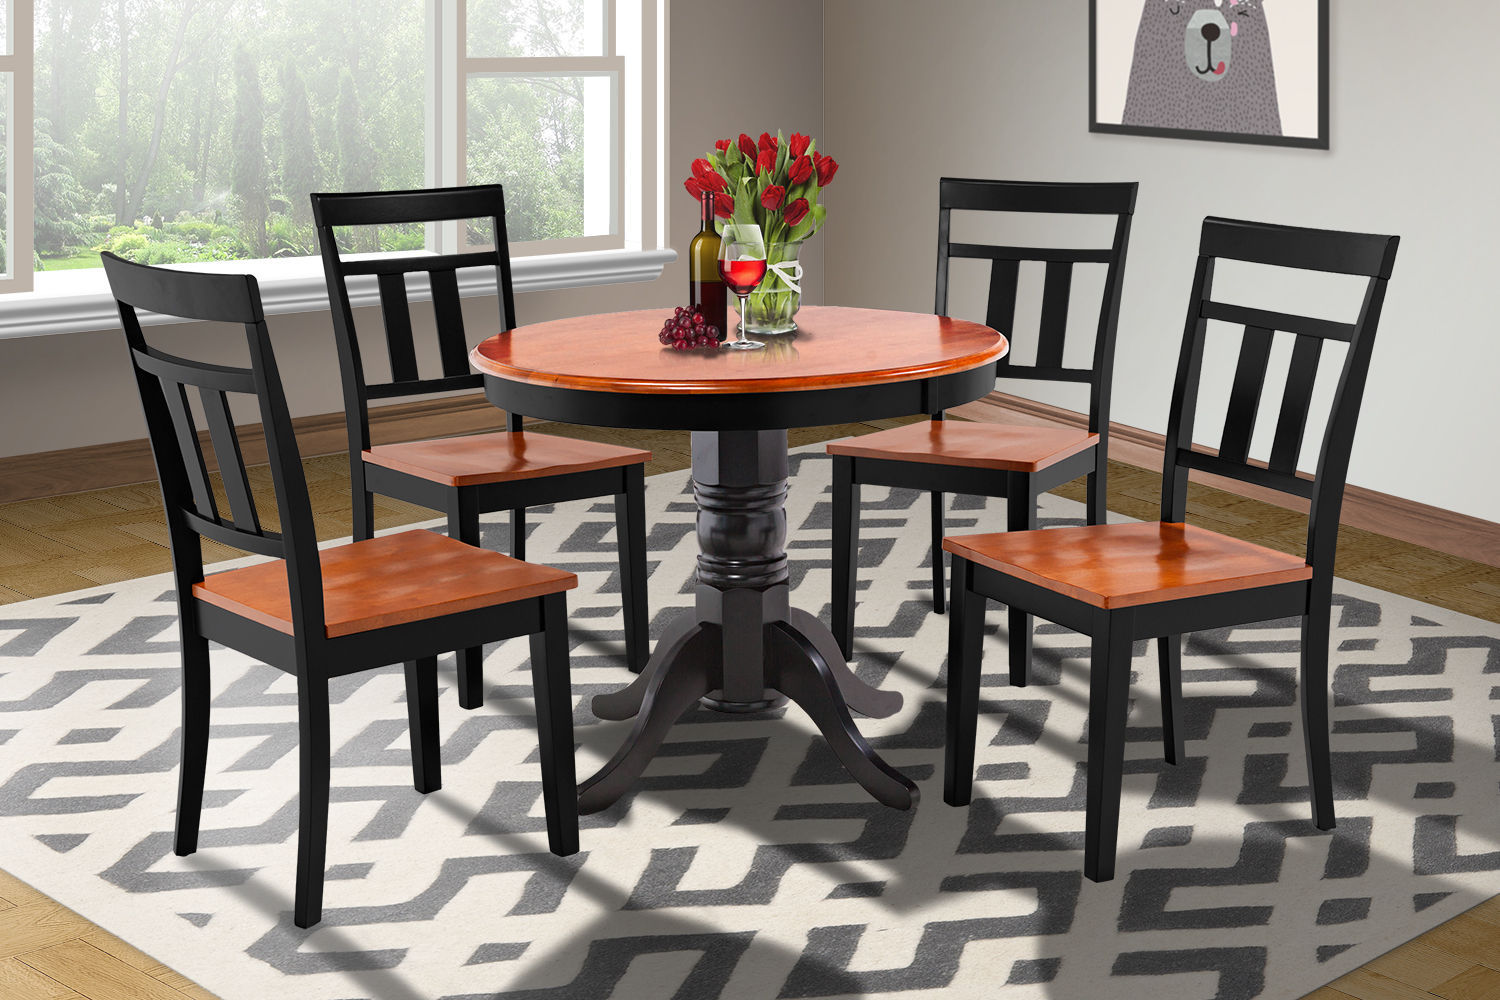 SET OF 6 KITCHEN DINING SIDE CHAIRS w/ WOODEN SEAT IN  BLACK CHERRY